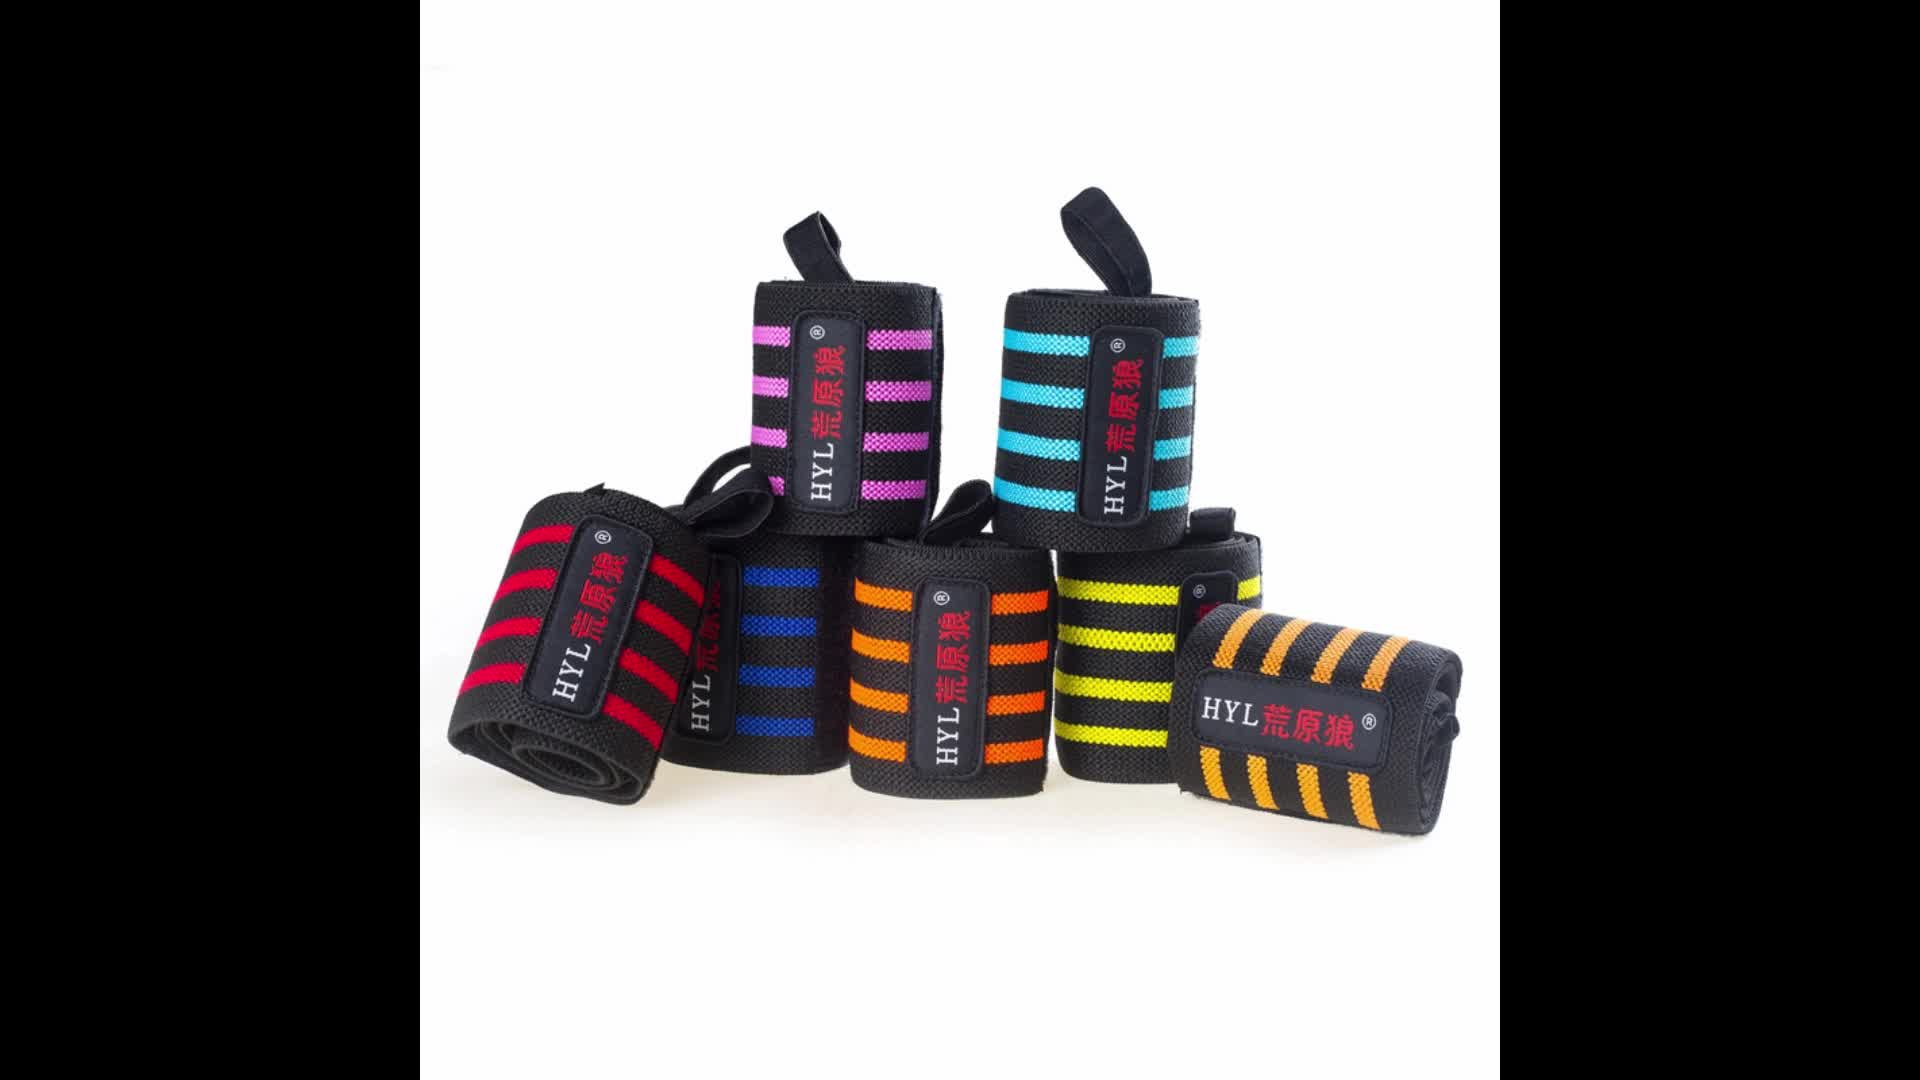 HYL-2633 Power weight lifting wrist support wraps gym bandage straps